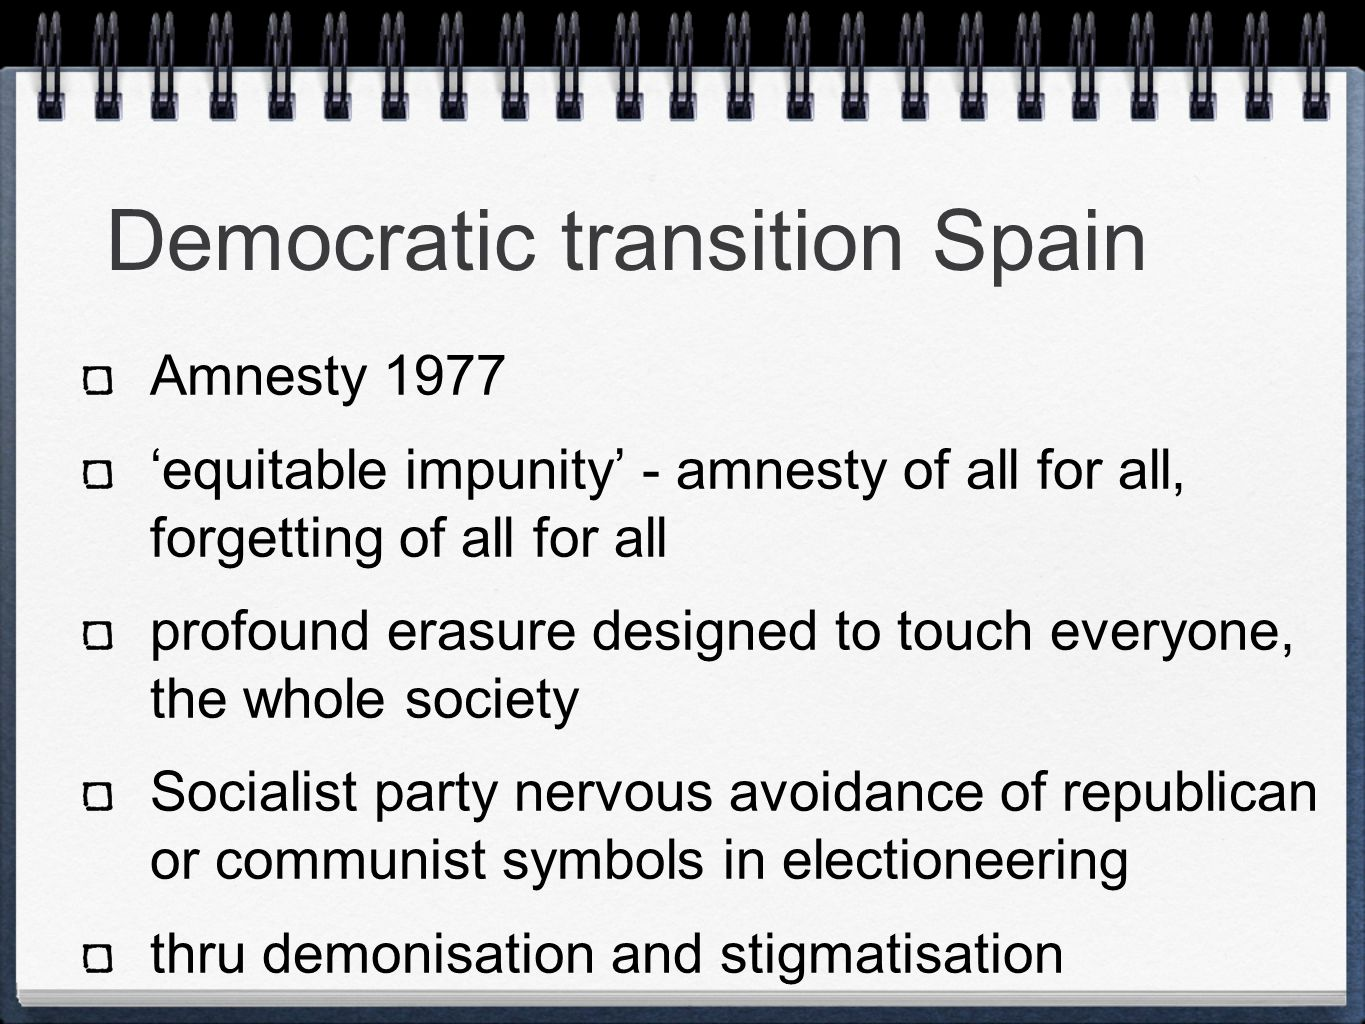 Democratic transition Spain Amnesty 1977 'equitable impunity' - amnesty of all for all, forgetting of all for all profound erasure designed to touch everyone, the whole society Socialist party nervous avoidance of republican or communist symbols in electioneering thru demonisation and stigmatisation